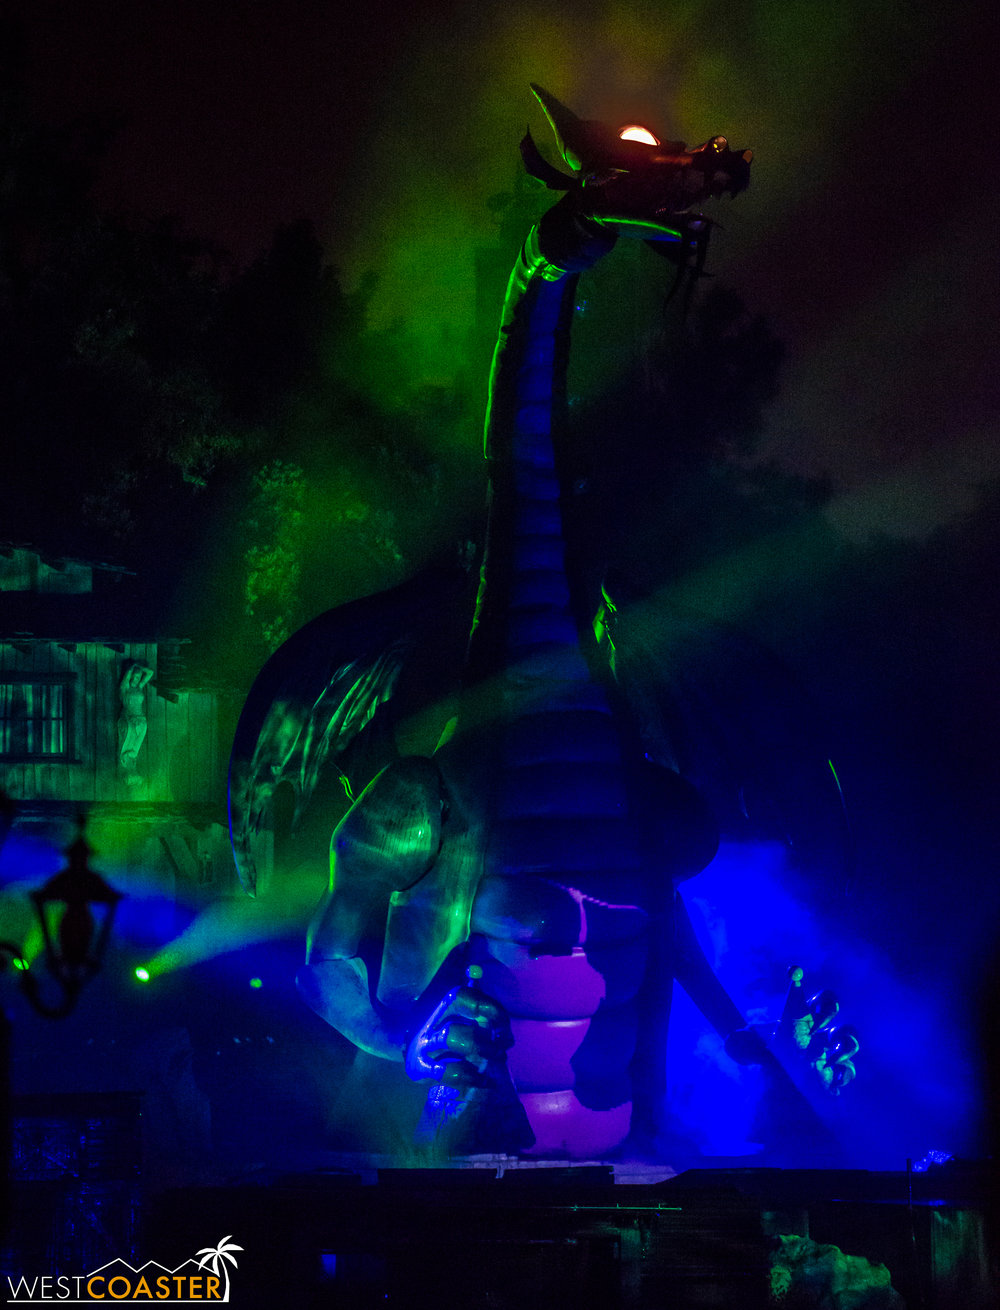 As you can see, however now, the dragon's eyes are lit as the beast rises out of its underground lair.  One might argue that having ol' Murphy (as the dragon is nicknamed by fans) slowly come out of the shadows and fog is actually more dramatic, but if that was the case, the projections showing dragon Maleficent should have been changed.